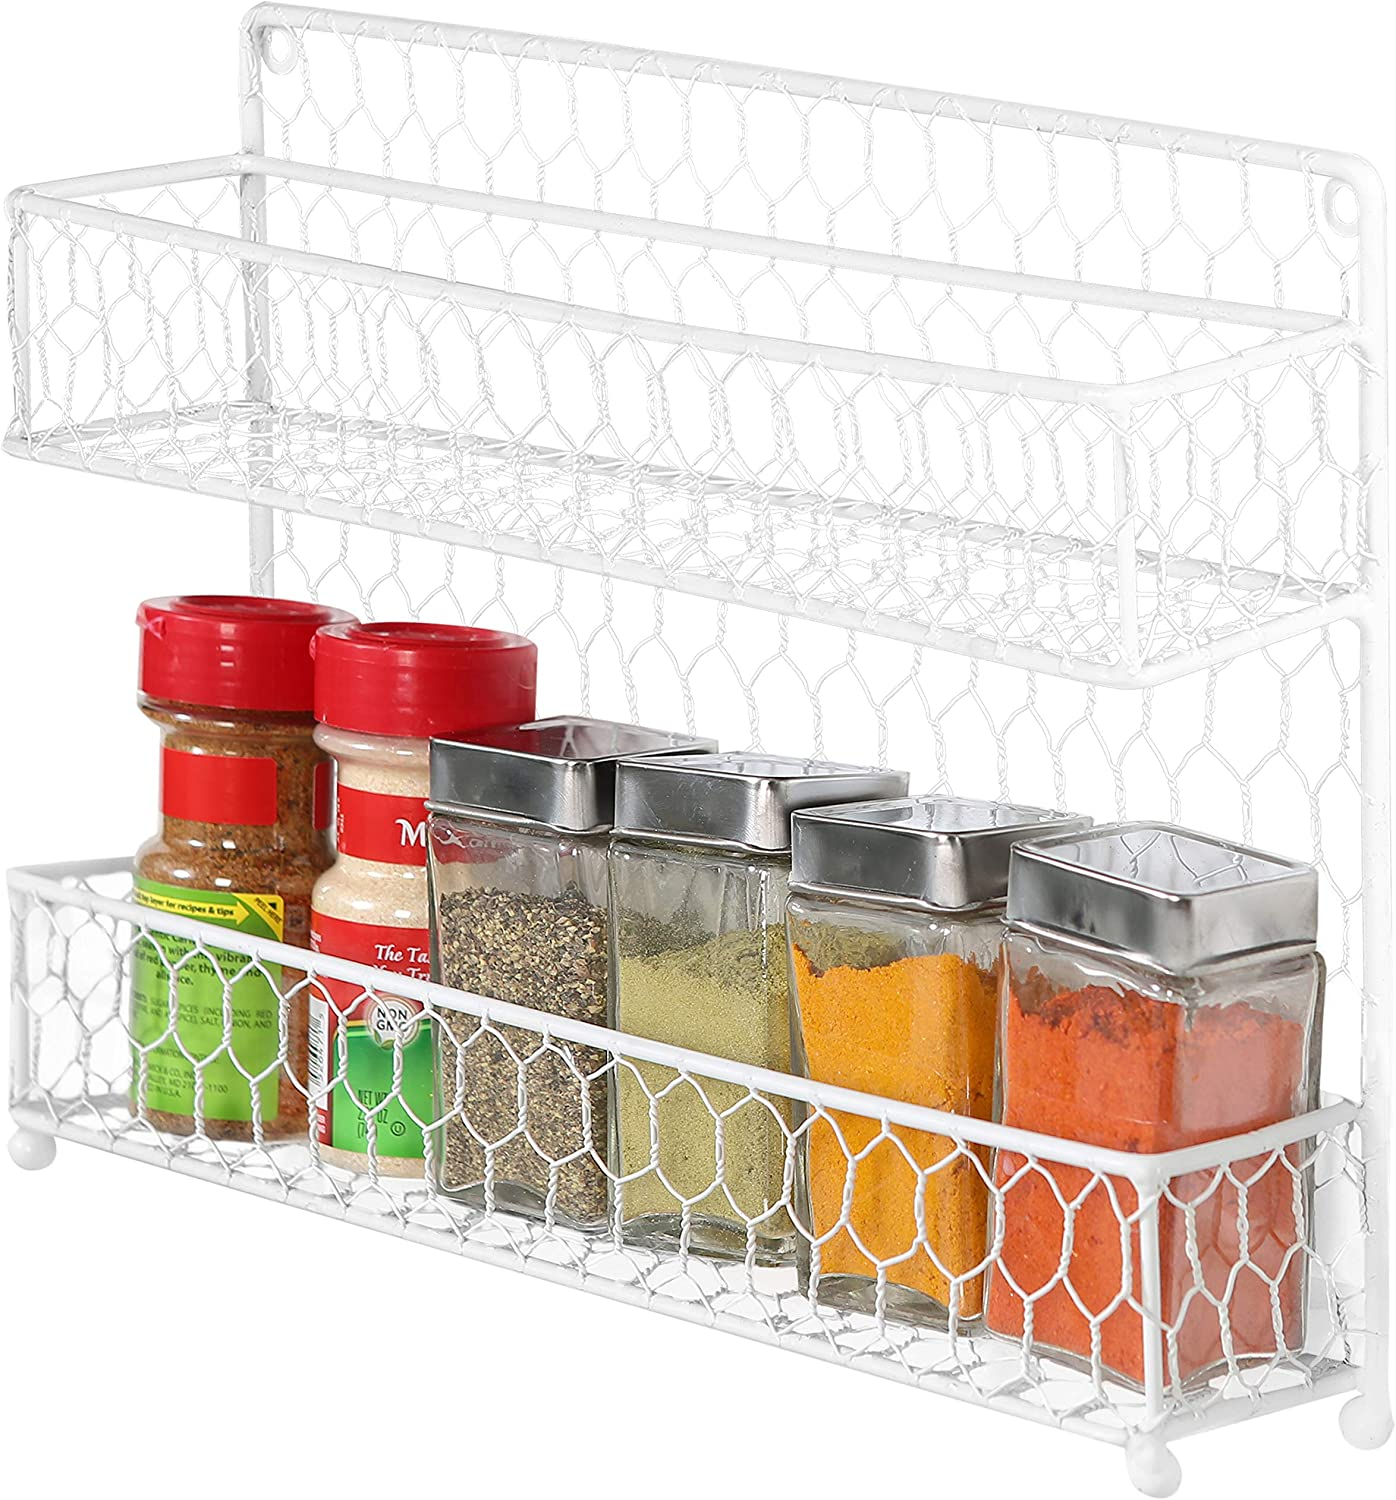 Black Rumcent Wire Wall Organizer Shelf 2-Tier Bathroom Shelf /& Spice Rack Multifunctional Storage Basket for Wall and Kitchen Countertop